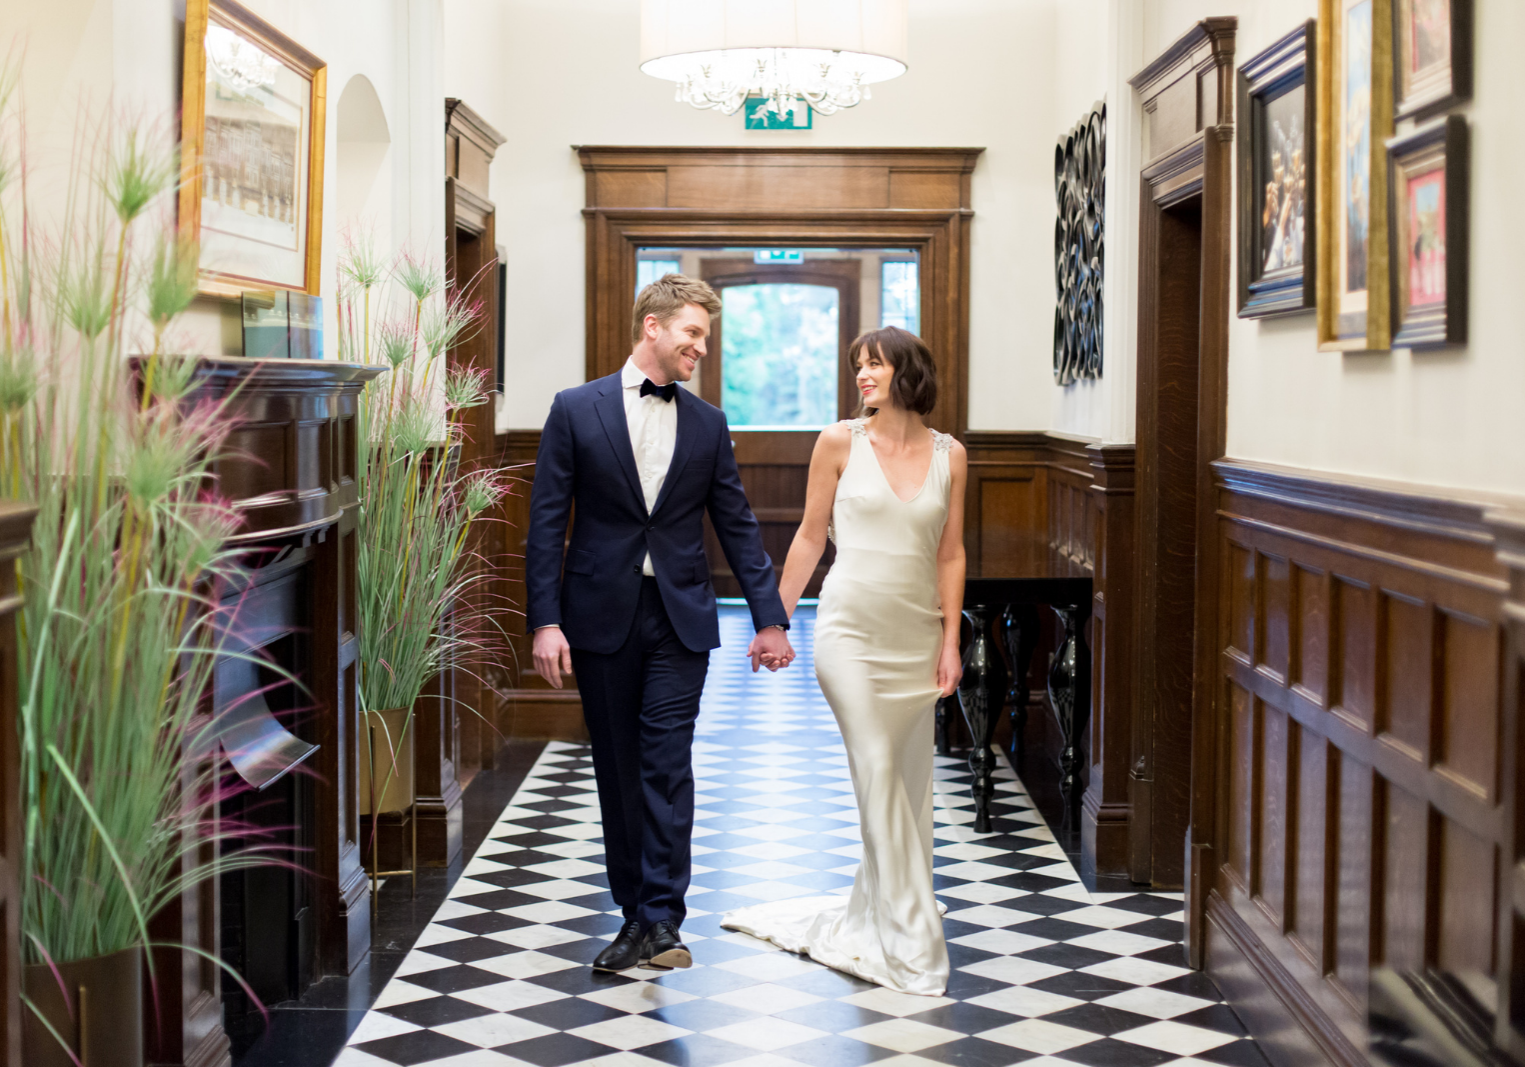 bride and groom walking in a country house turned wedding venue